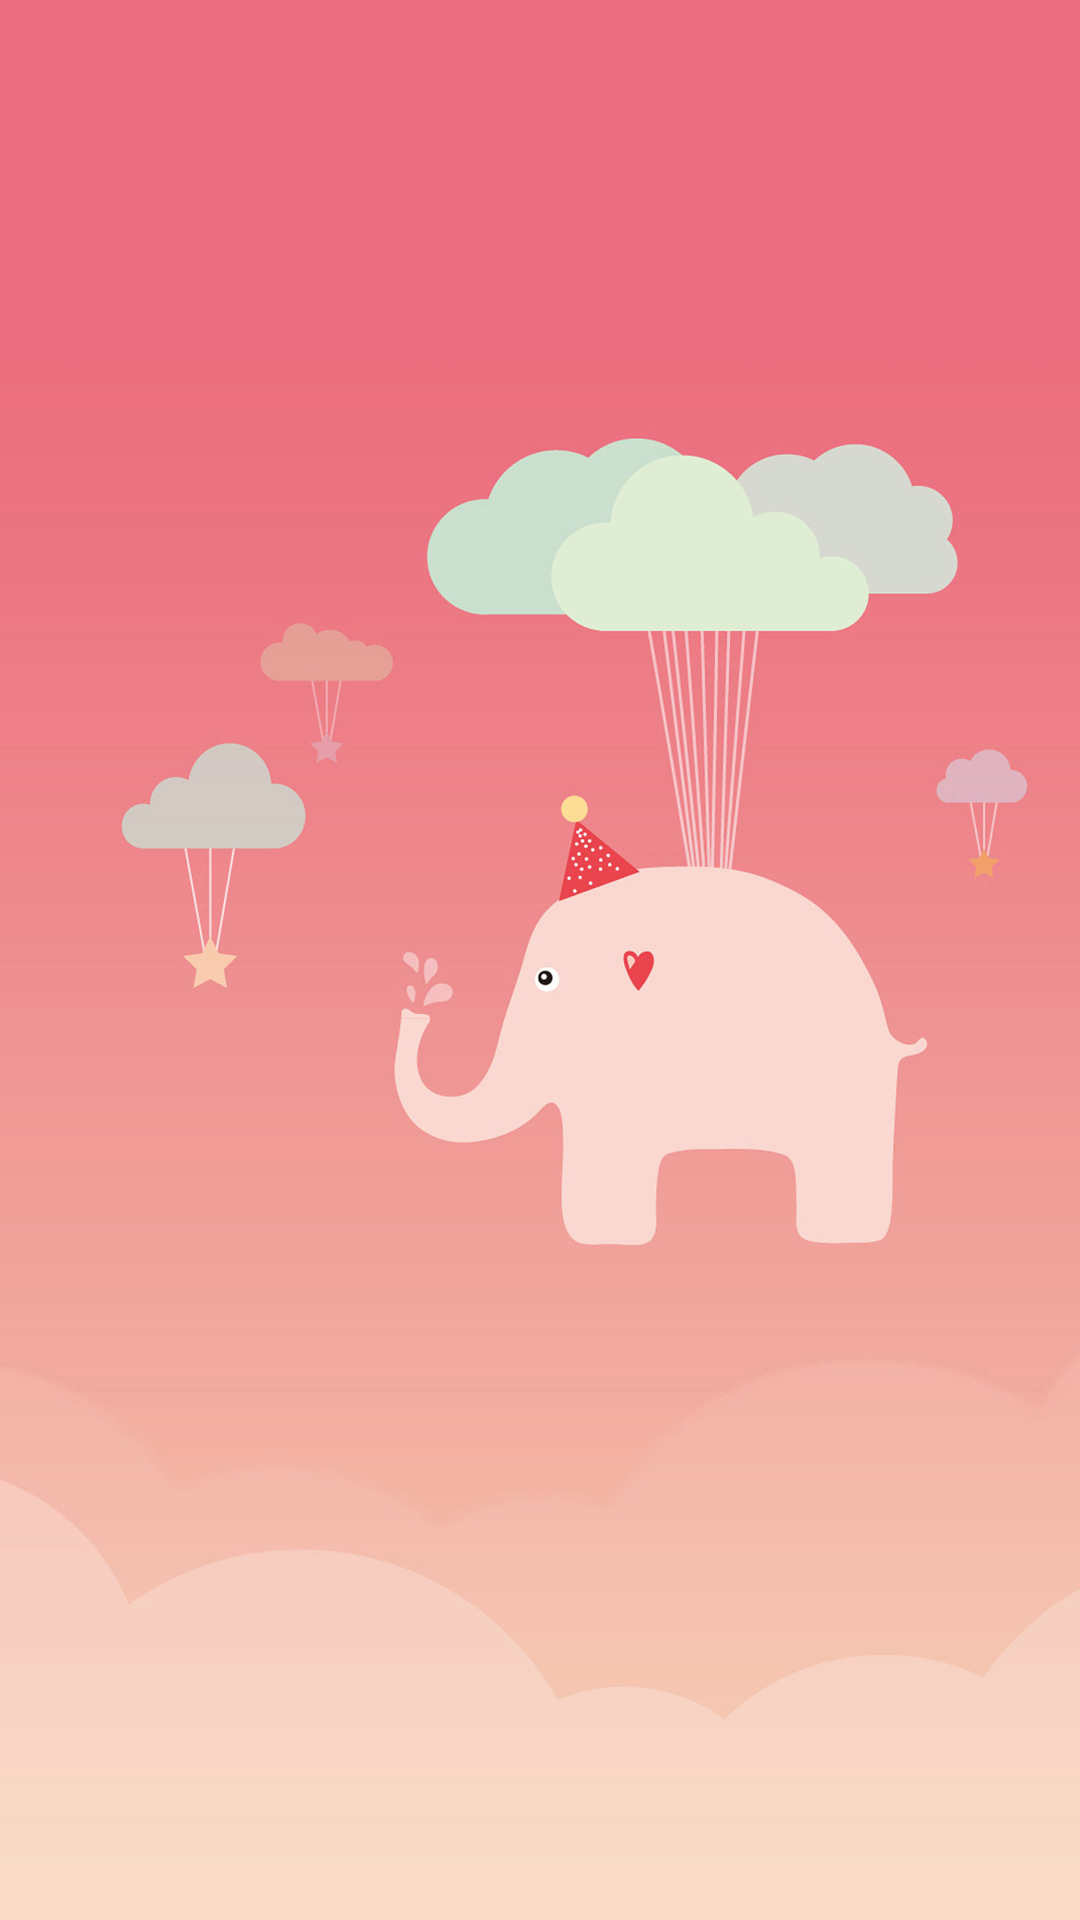 Cute Elephant iPhone 6 Wallpaper Download iPhone Wallpapers iPad 1080x1920